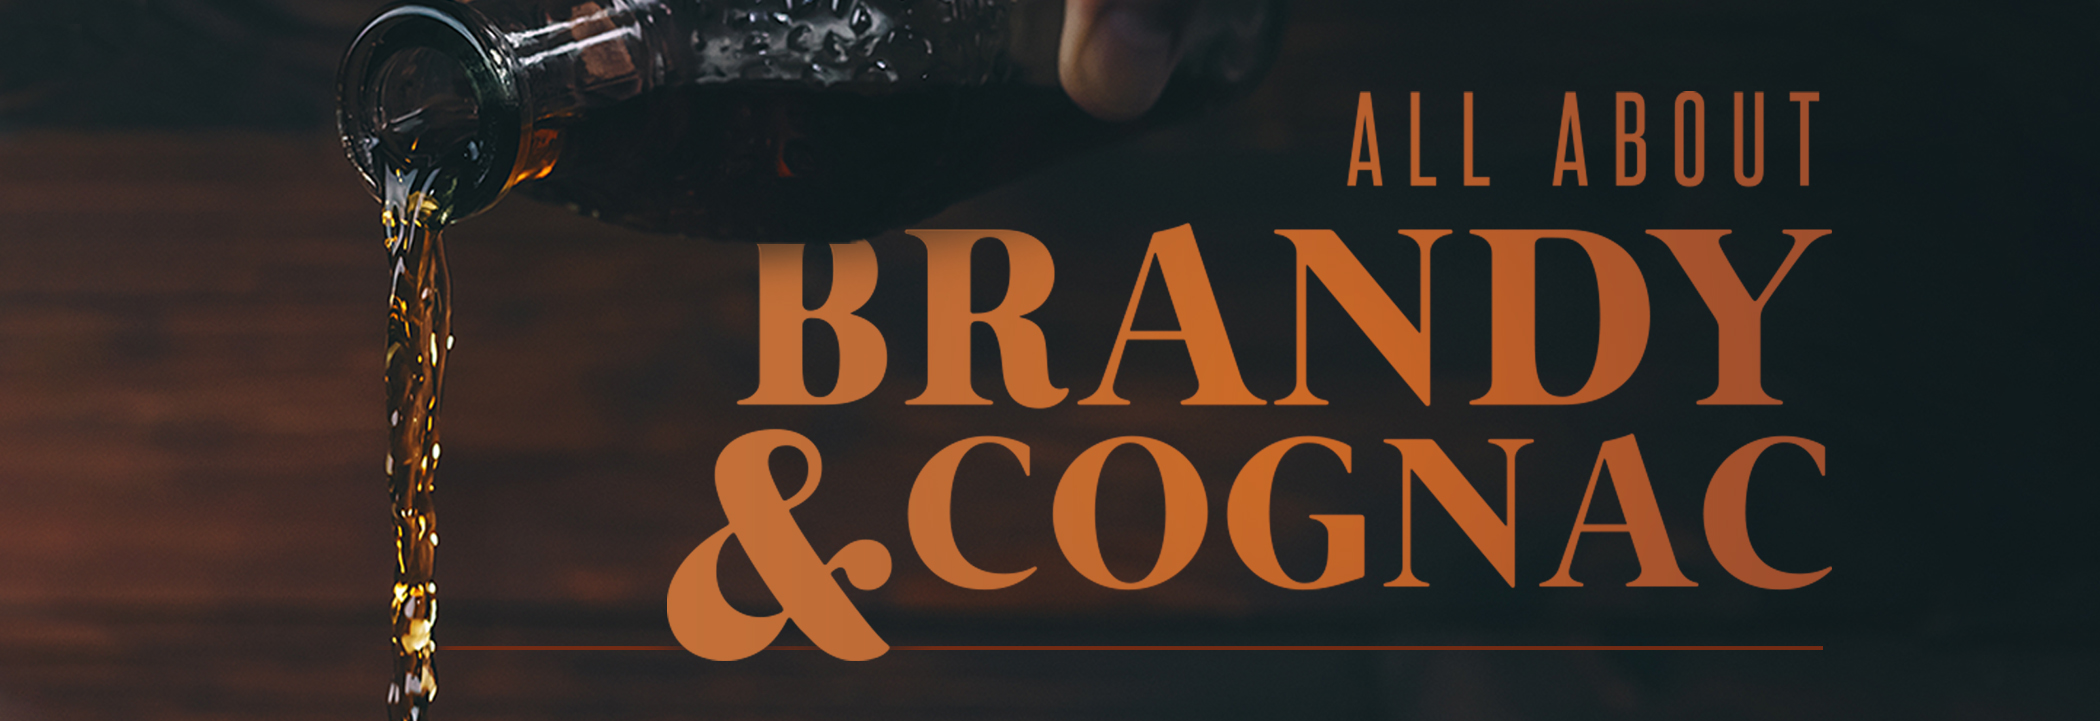 All About Brandy and Cognac header